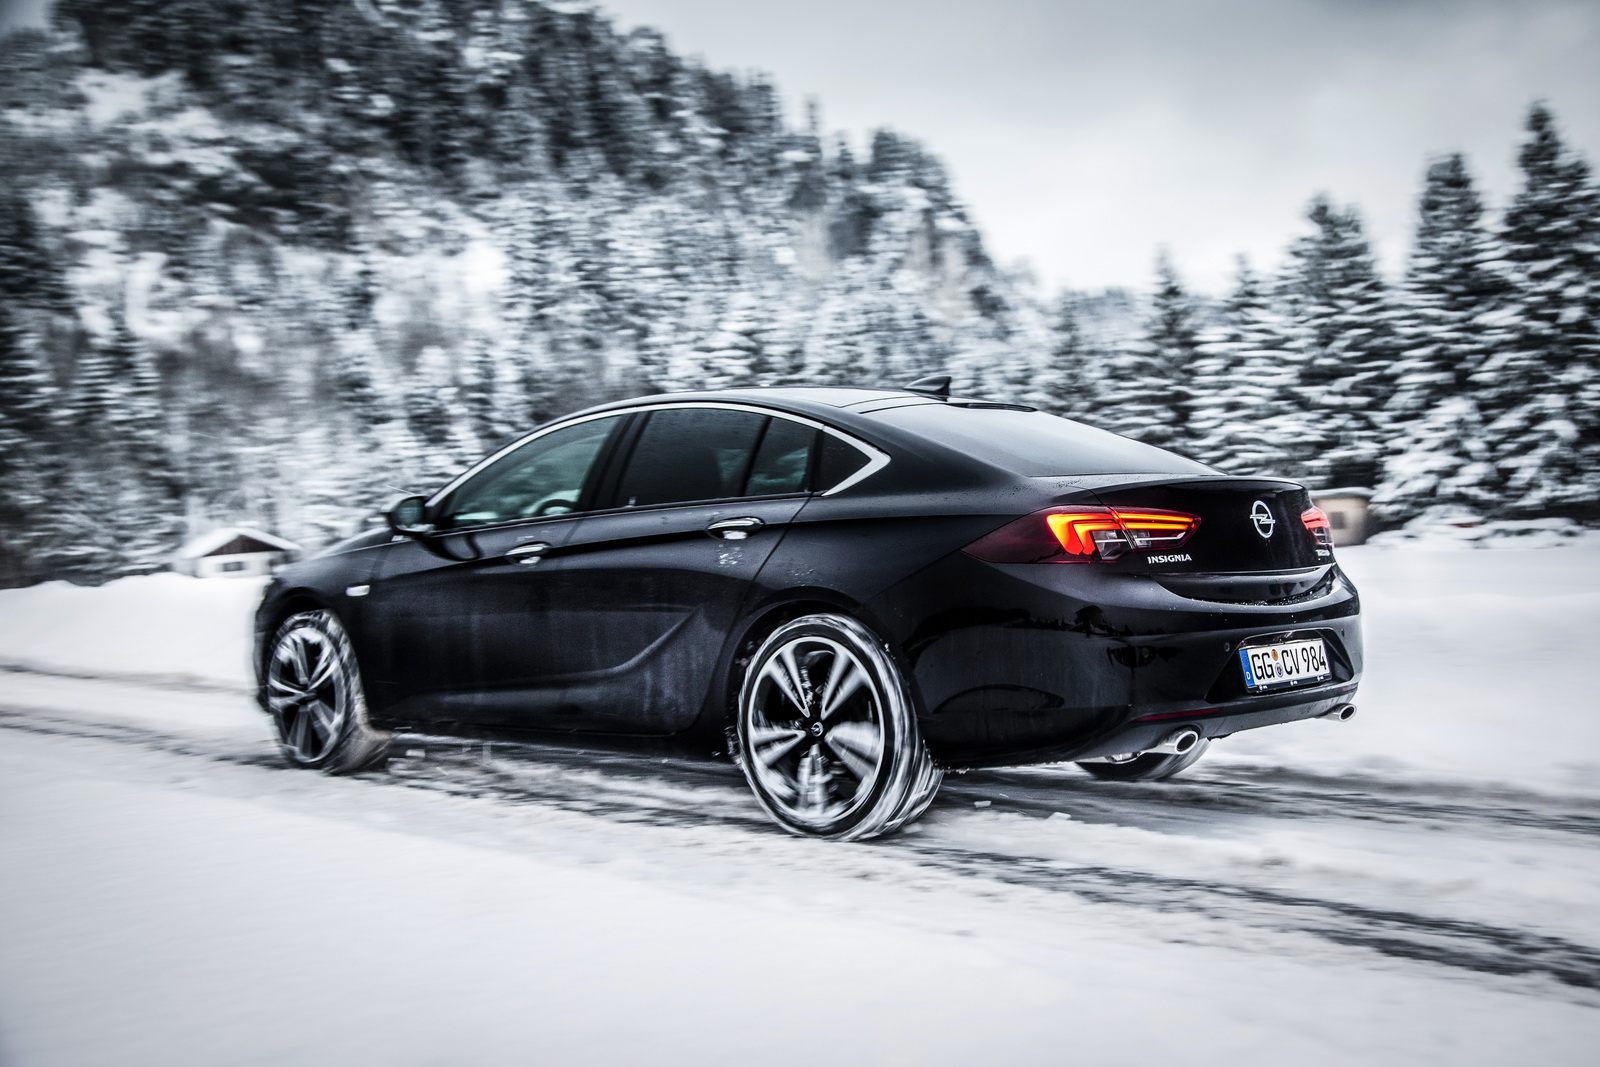 The new Opel Insignia's torque vectoring all-wheel drive system applies drive to one or both rear wheels independently.